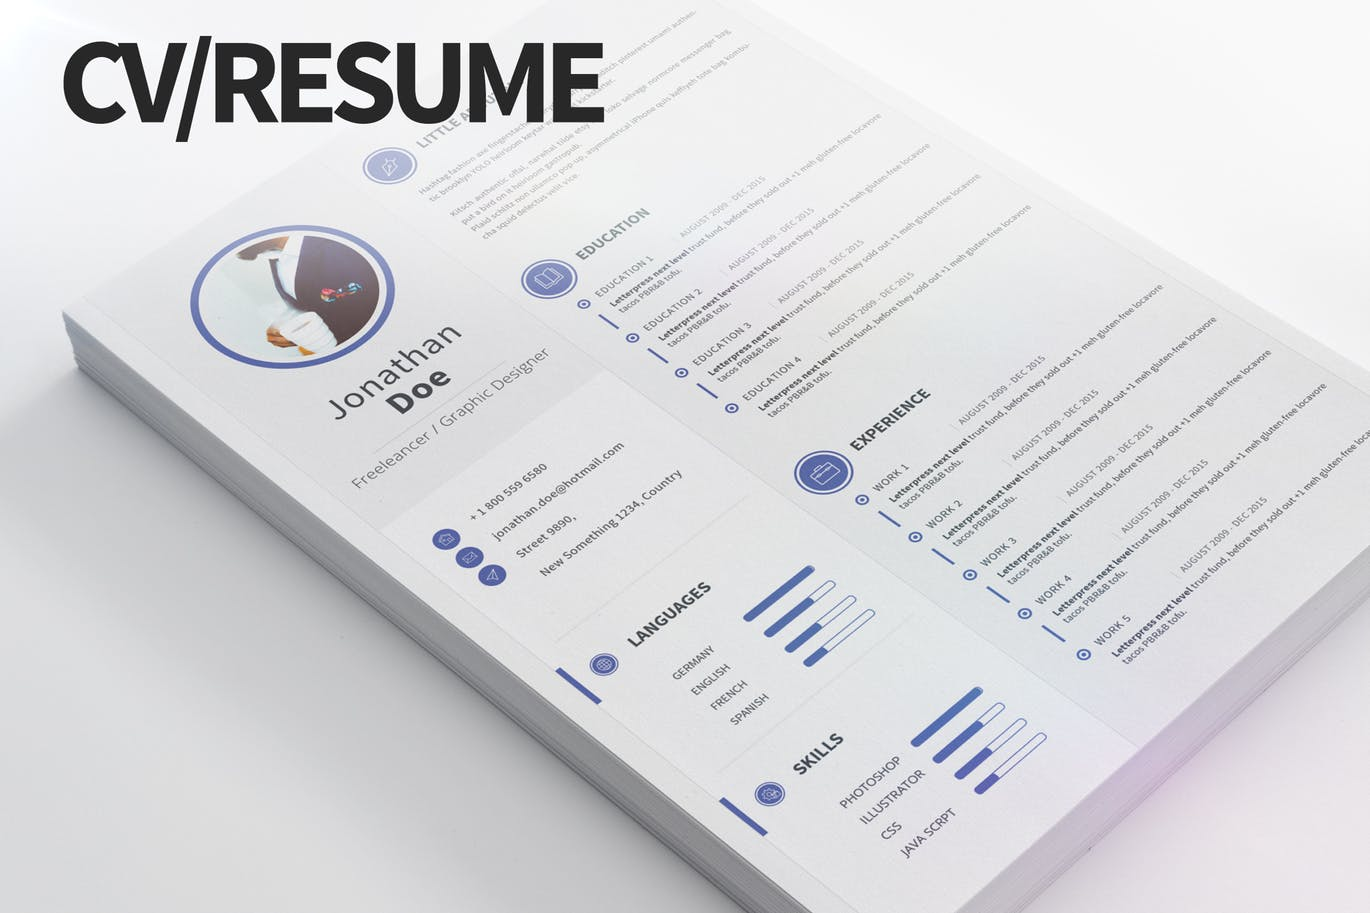 The Best CV & Resume Templates: 50 Examples 15